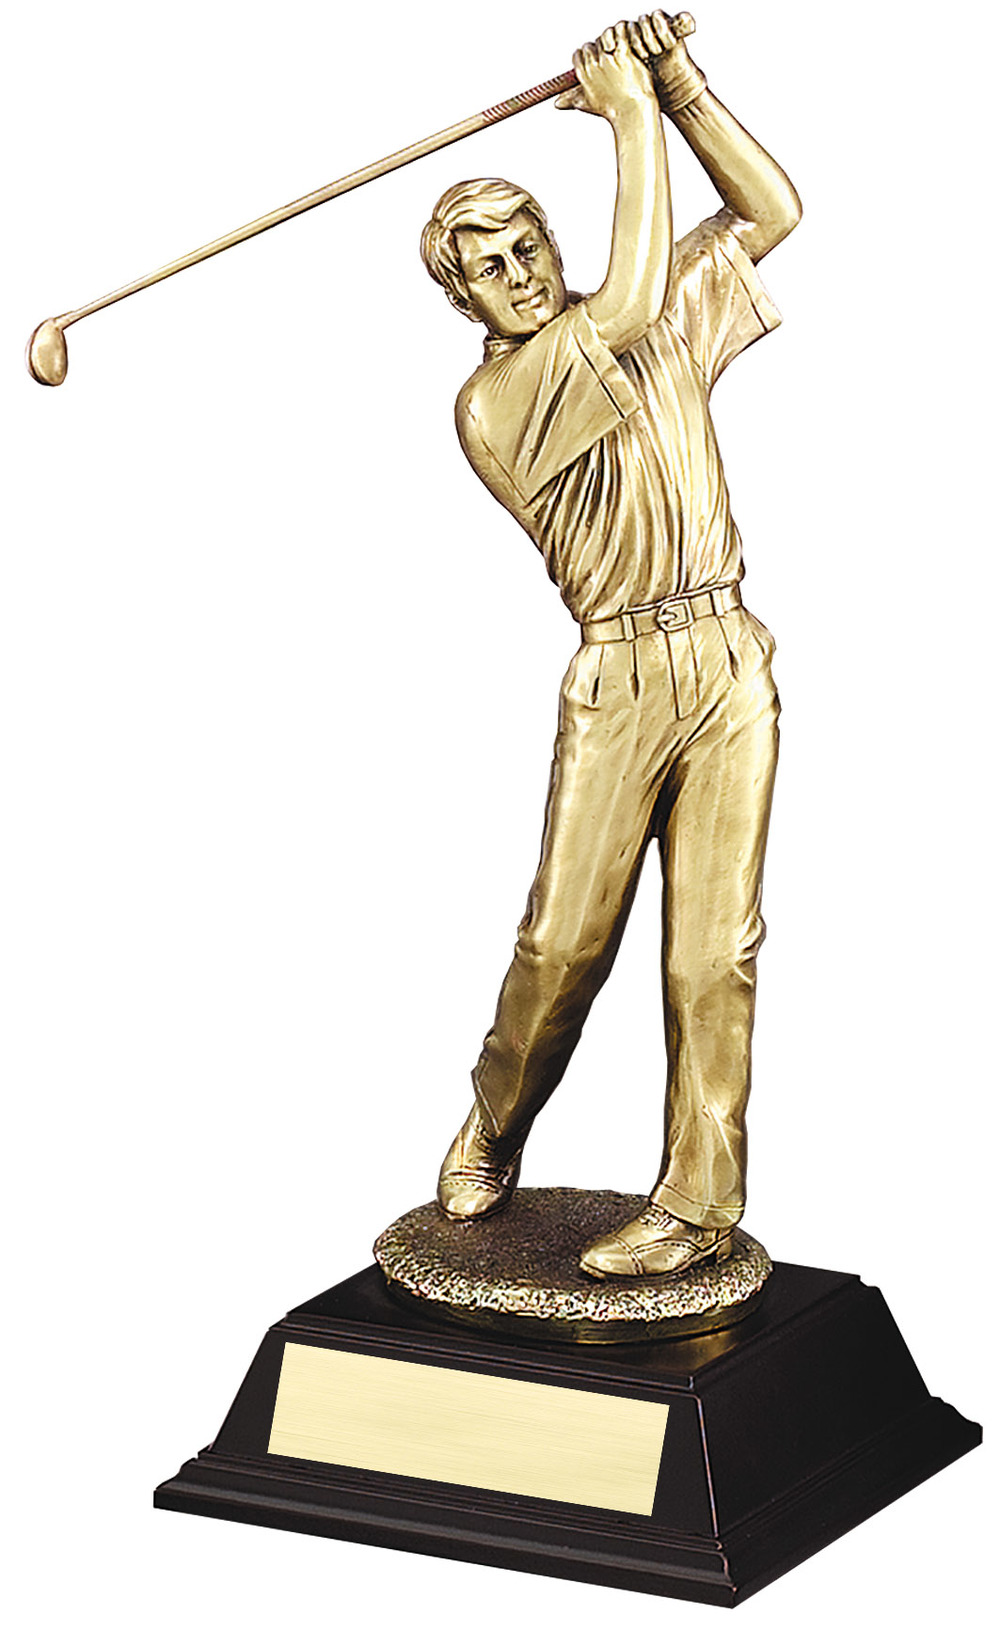 "Elegant Gold Metallic Resin -Swing, Male Large: G2703 - 16"" tall - $102 Medium: G2702 - 13"" tall - $68 Small: G2701 - 10"" tall - $38"